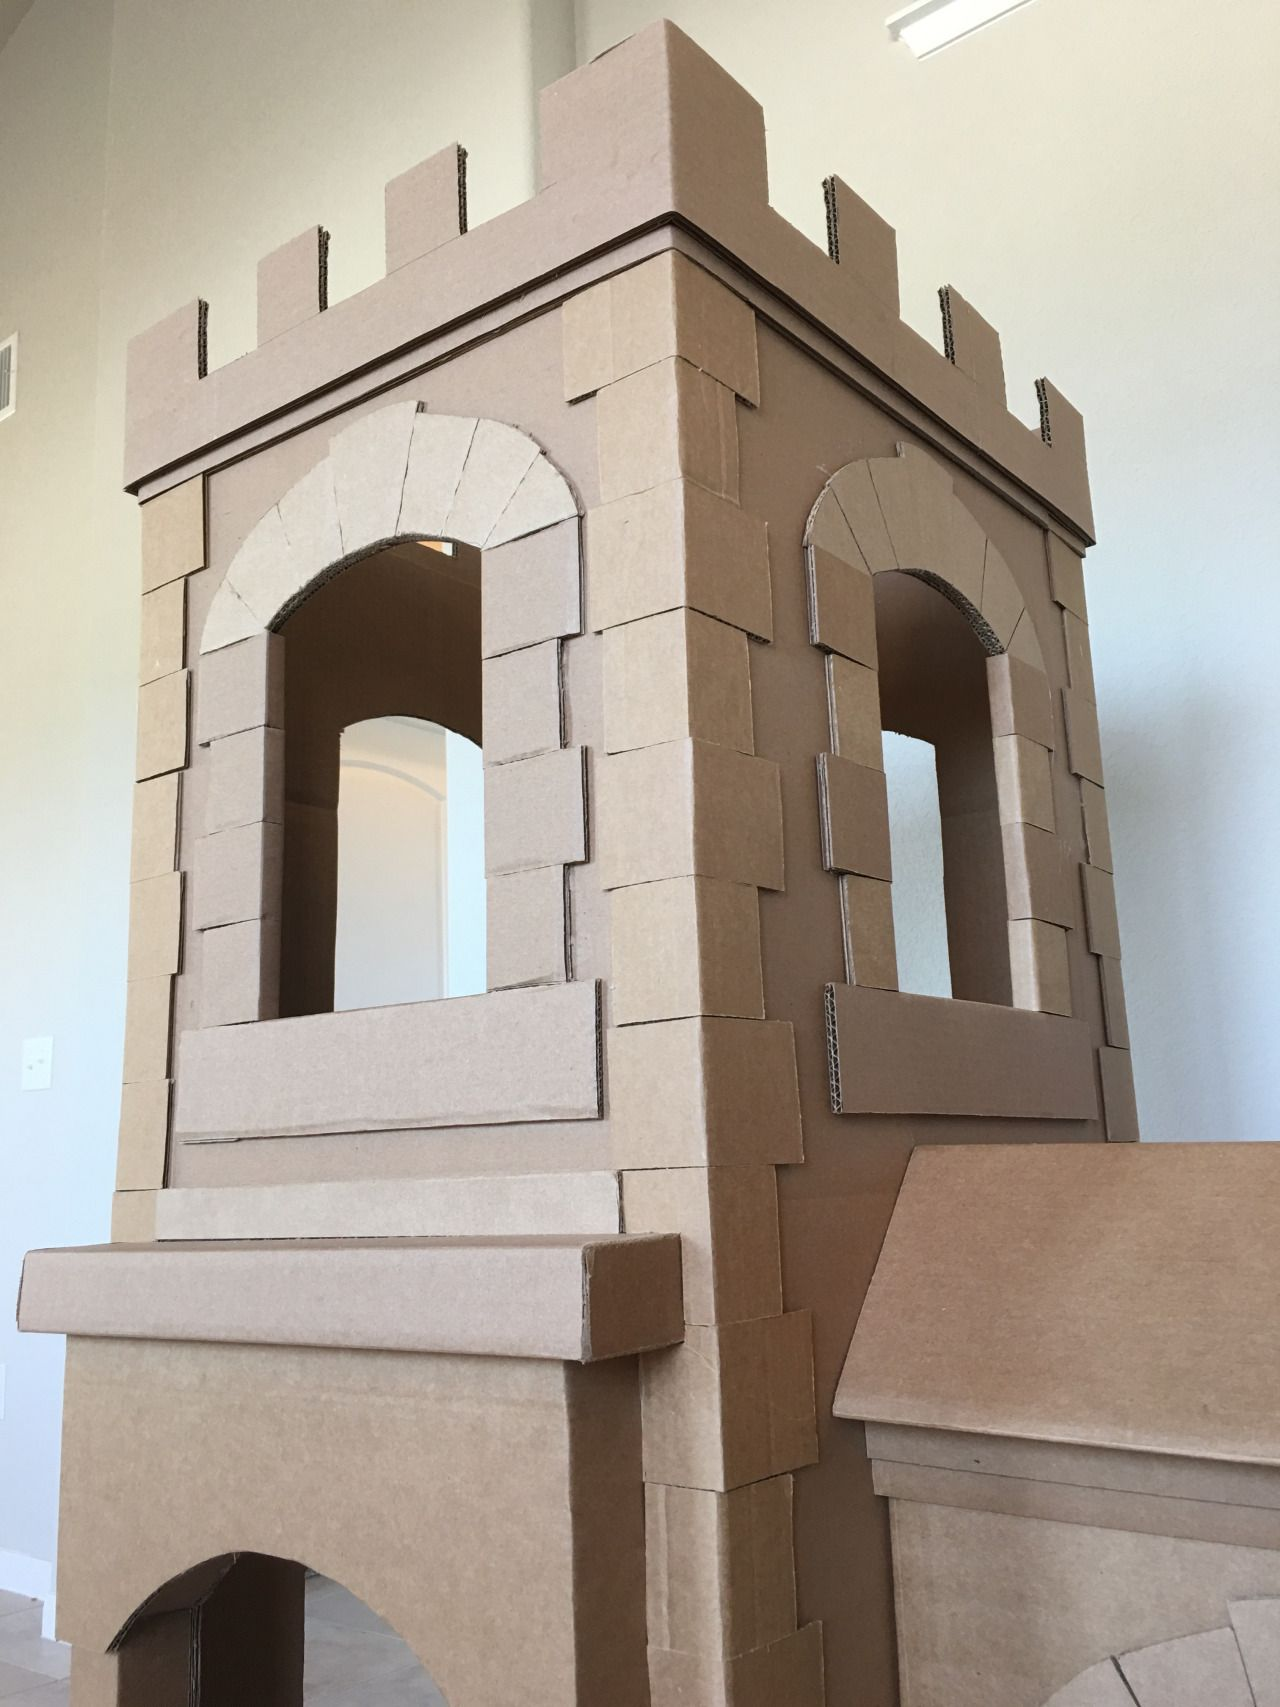 brandon tran a kid s dream cardboard castle made out of